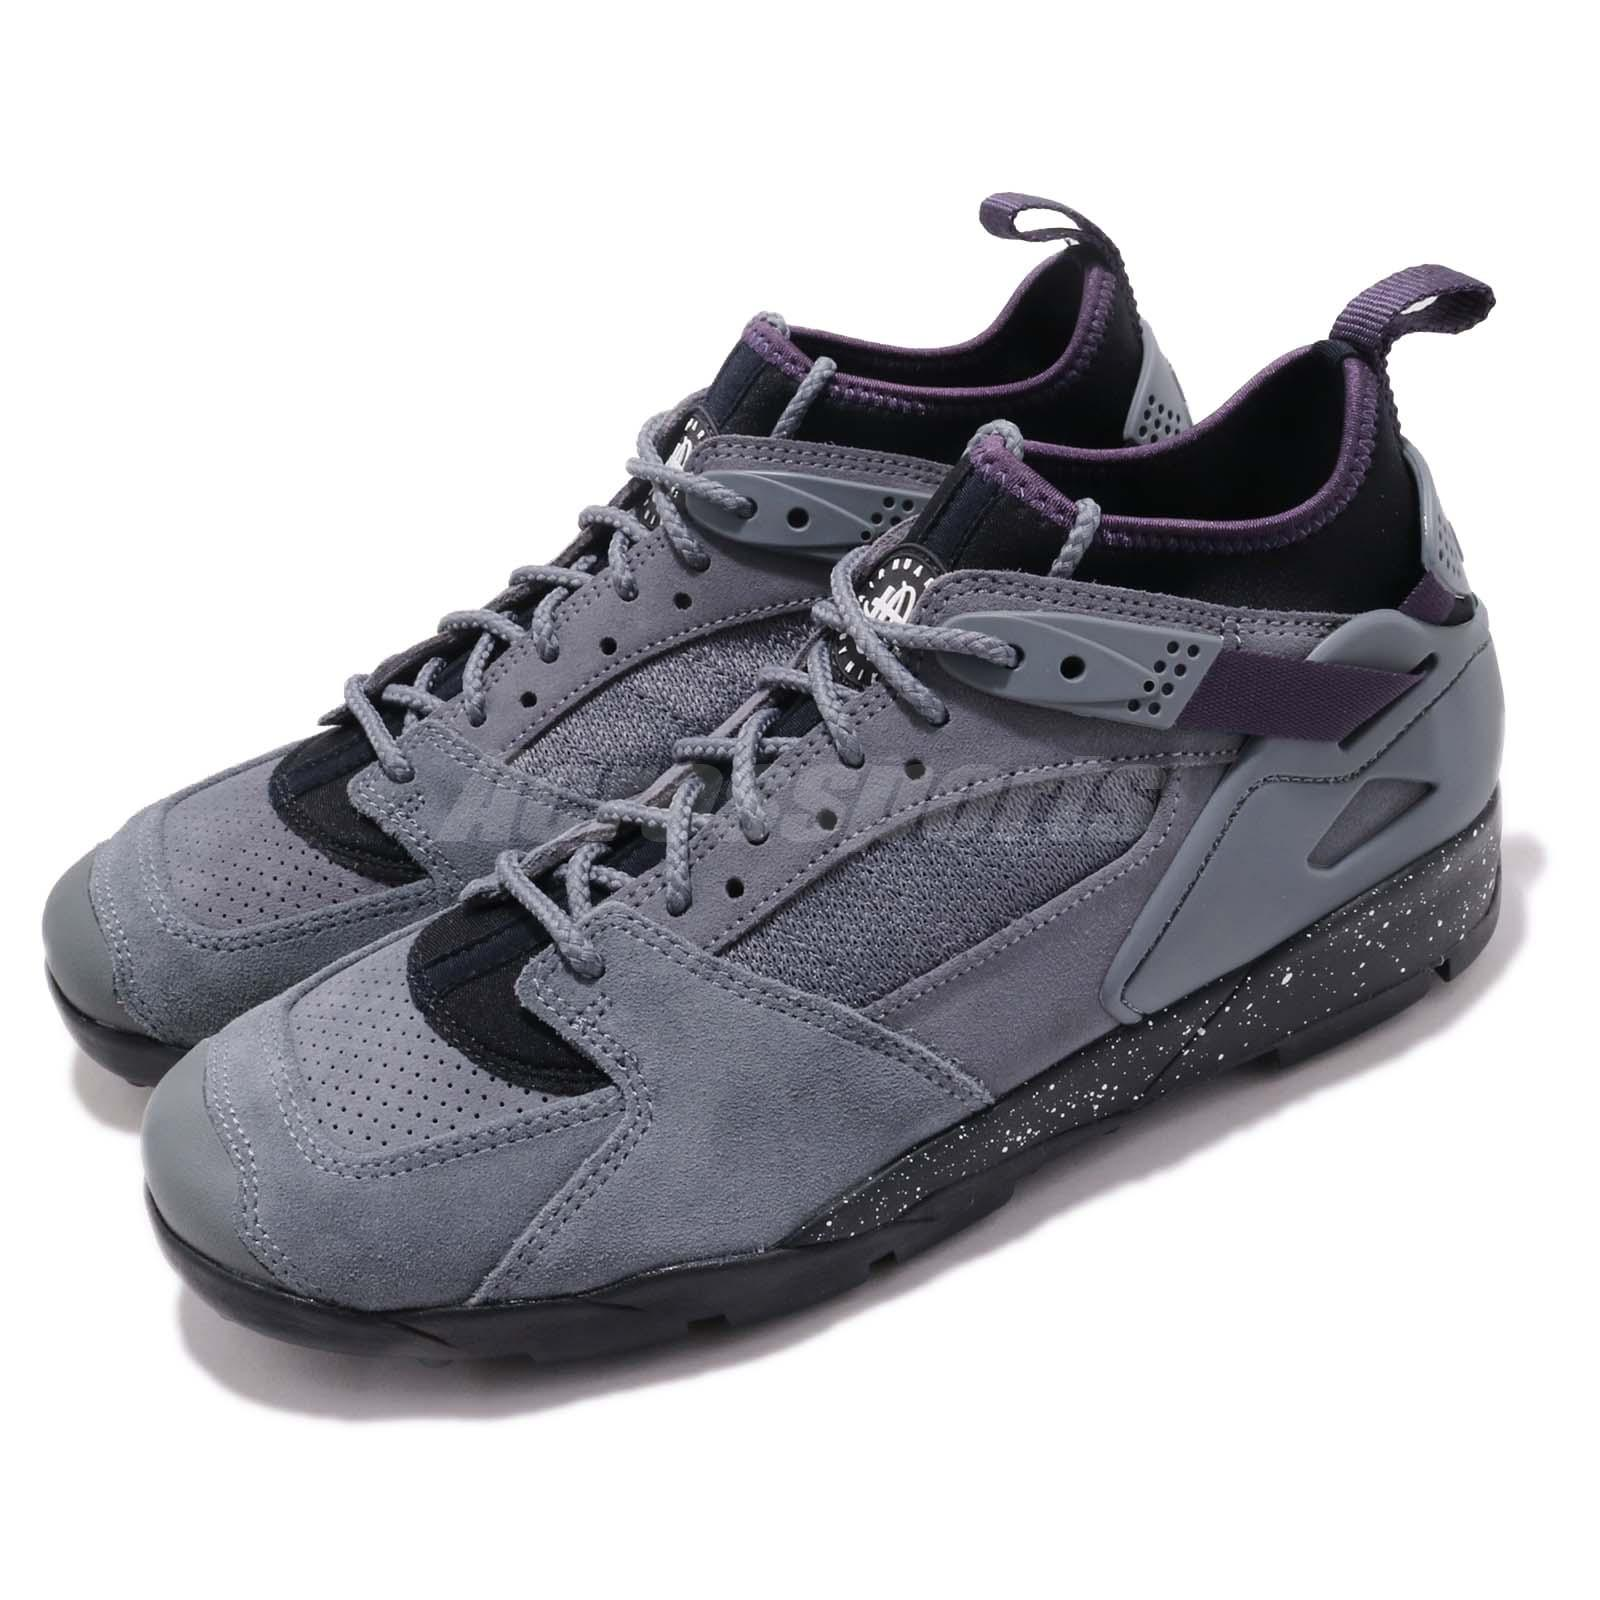 Nike ACG Air Revaderchi Grey Black Purple Men Outdoors Trail Shoes ... 6768dce03